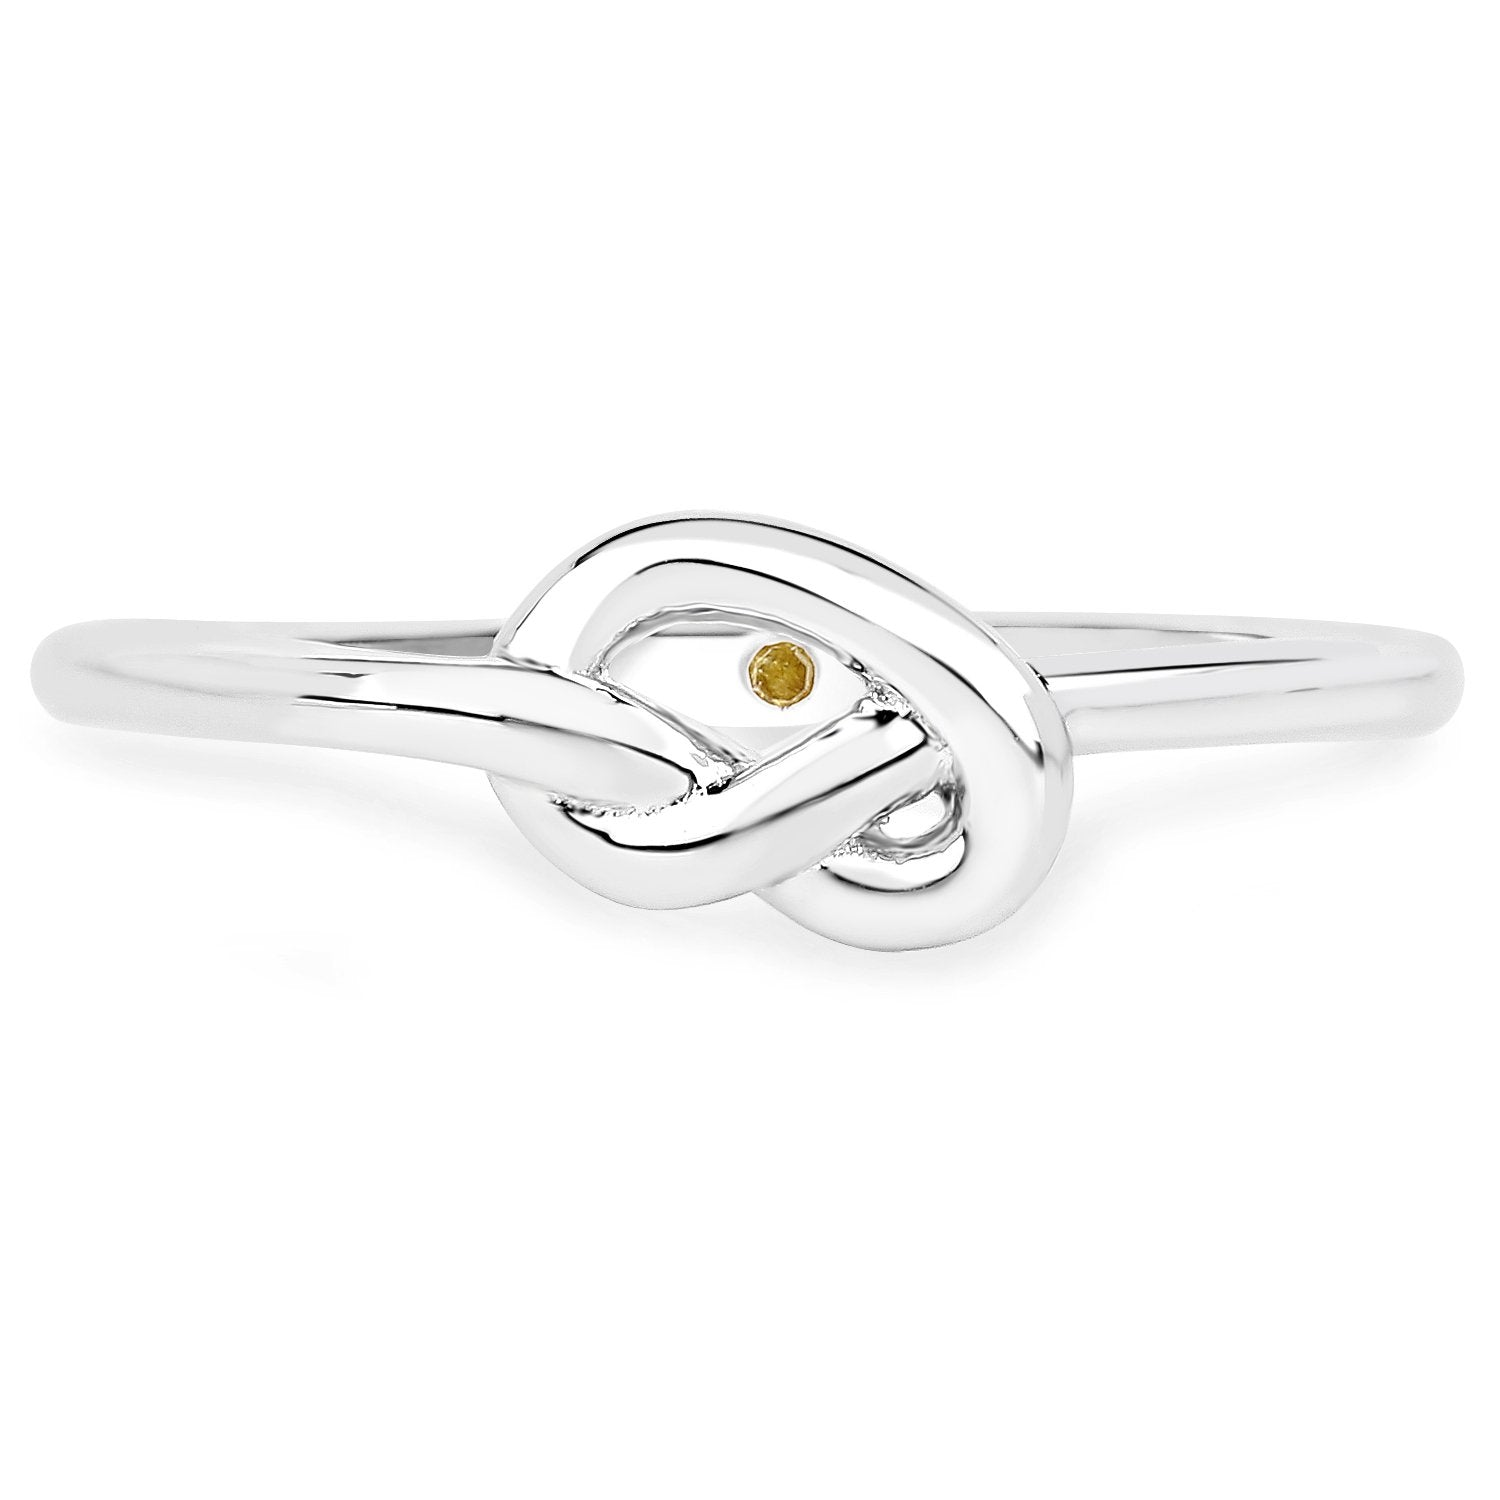 LoveHuang 0.01 Carats Genuine Yellow Diamond (I-J, I2-I3) Knot Ring Solid .925 Sterling Silver With Rhodium Plating